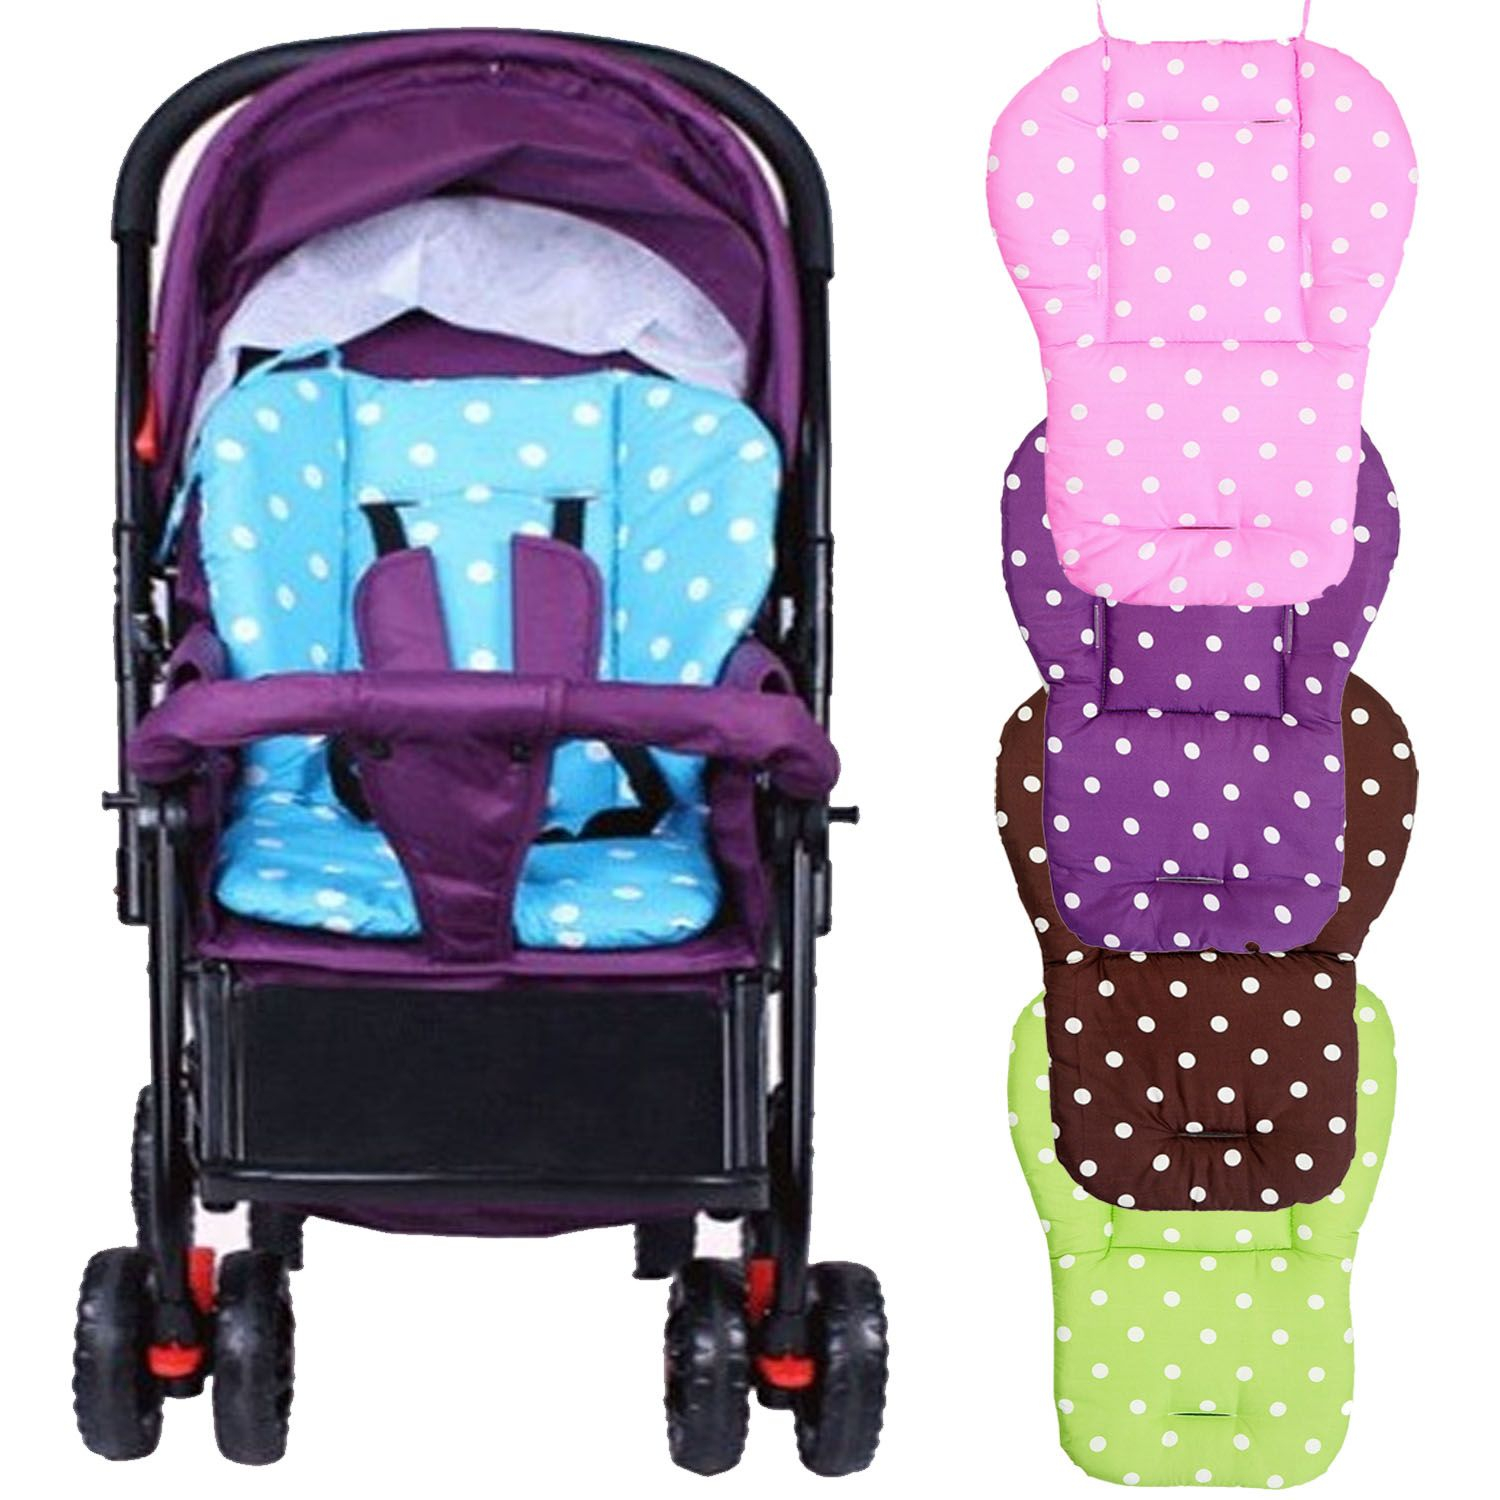 Cotton Soft Thick Baby Infant Stroller Seat Pad Pushchair